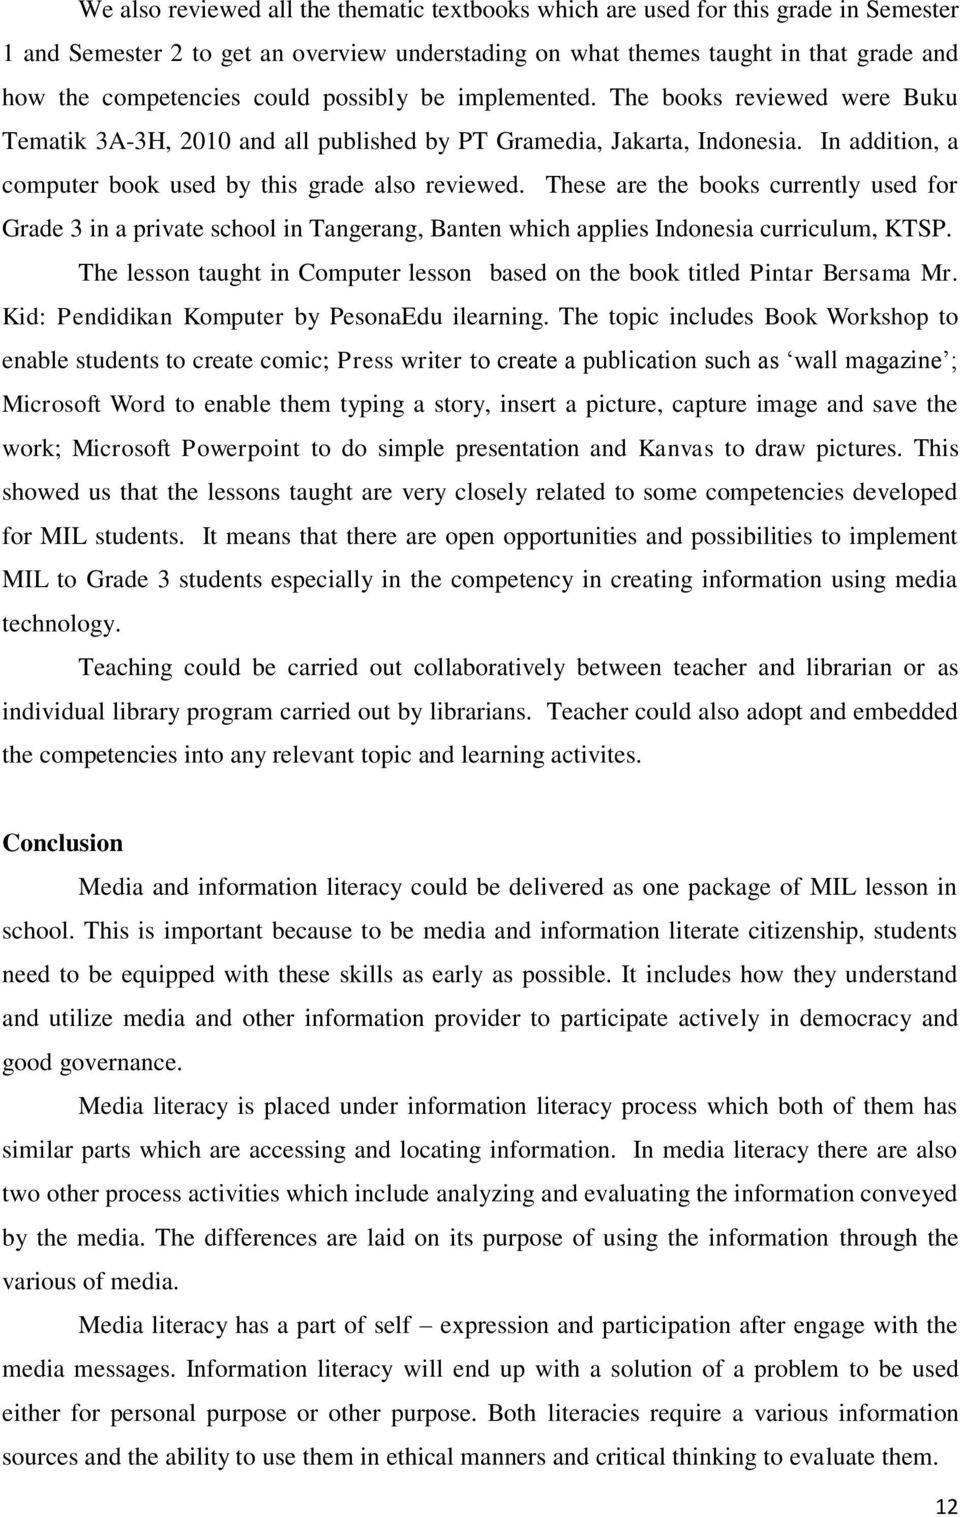 Developing A Media And Information Literacy Program A Mil Program